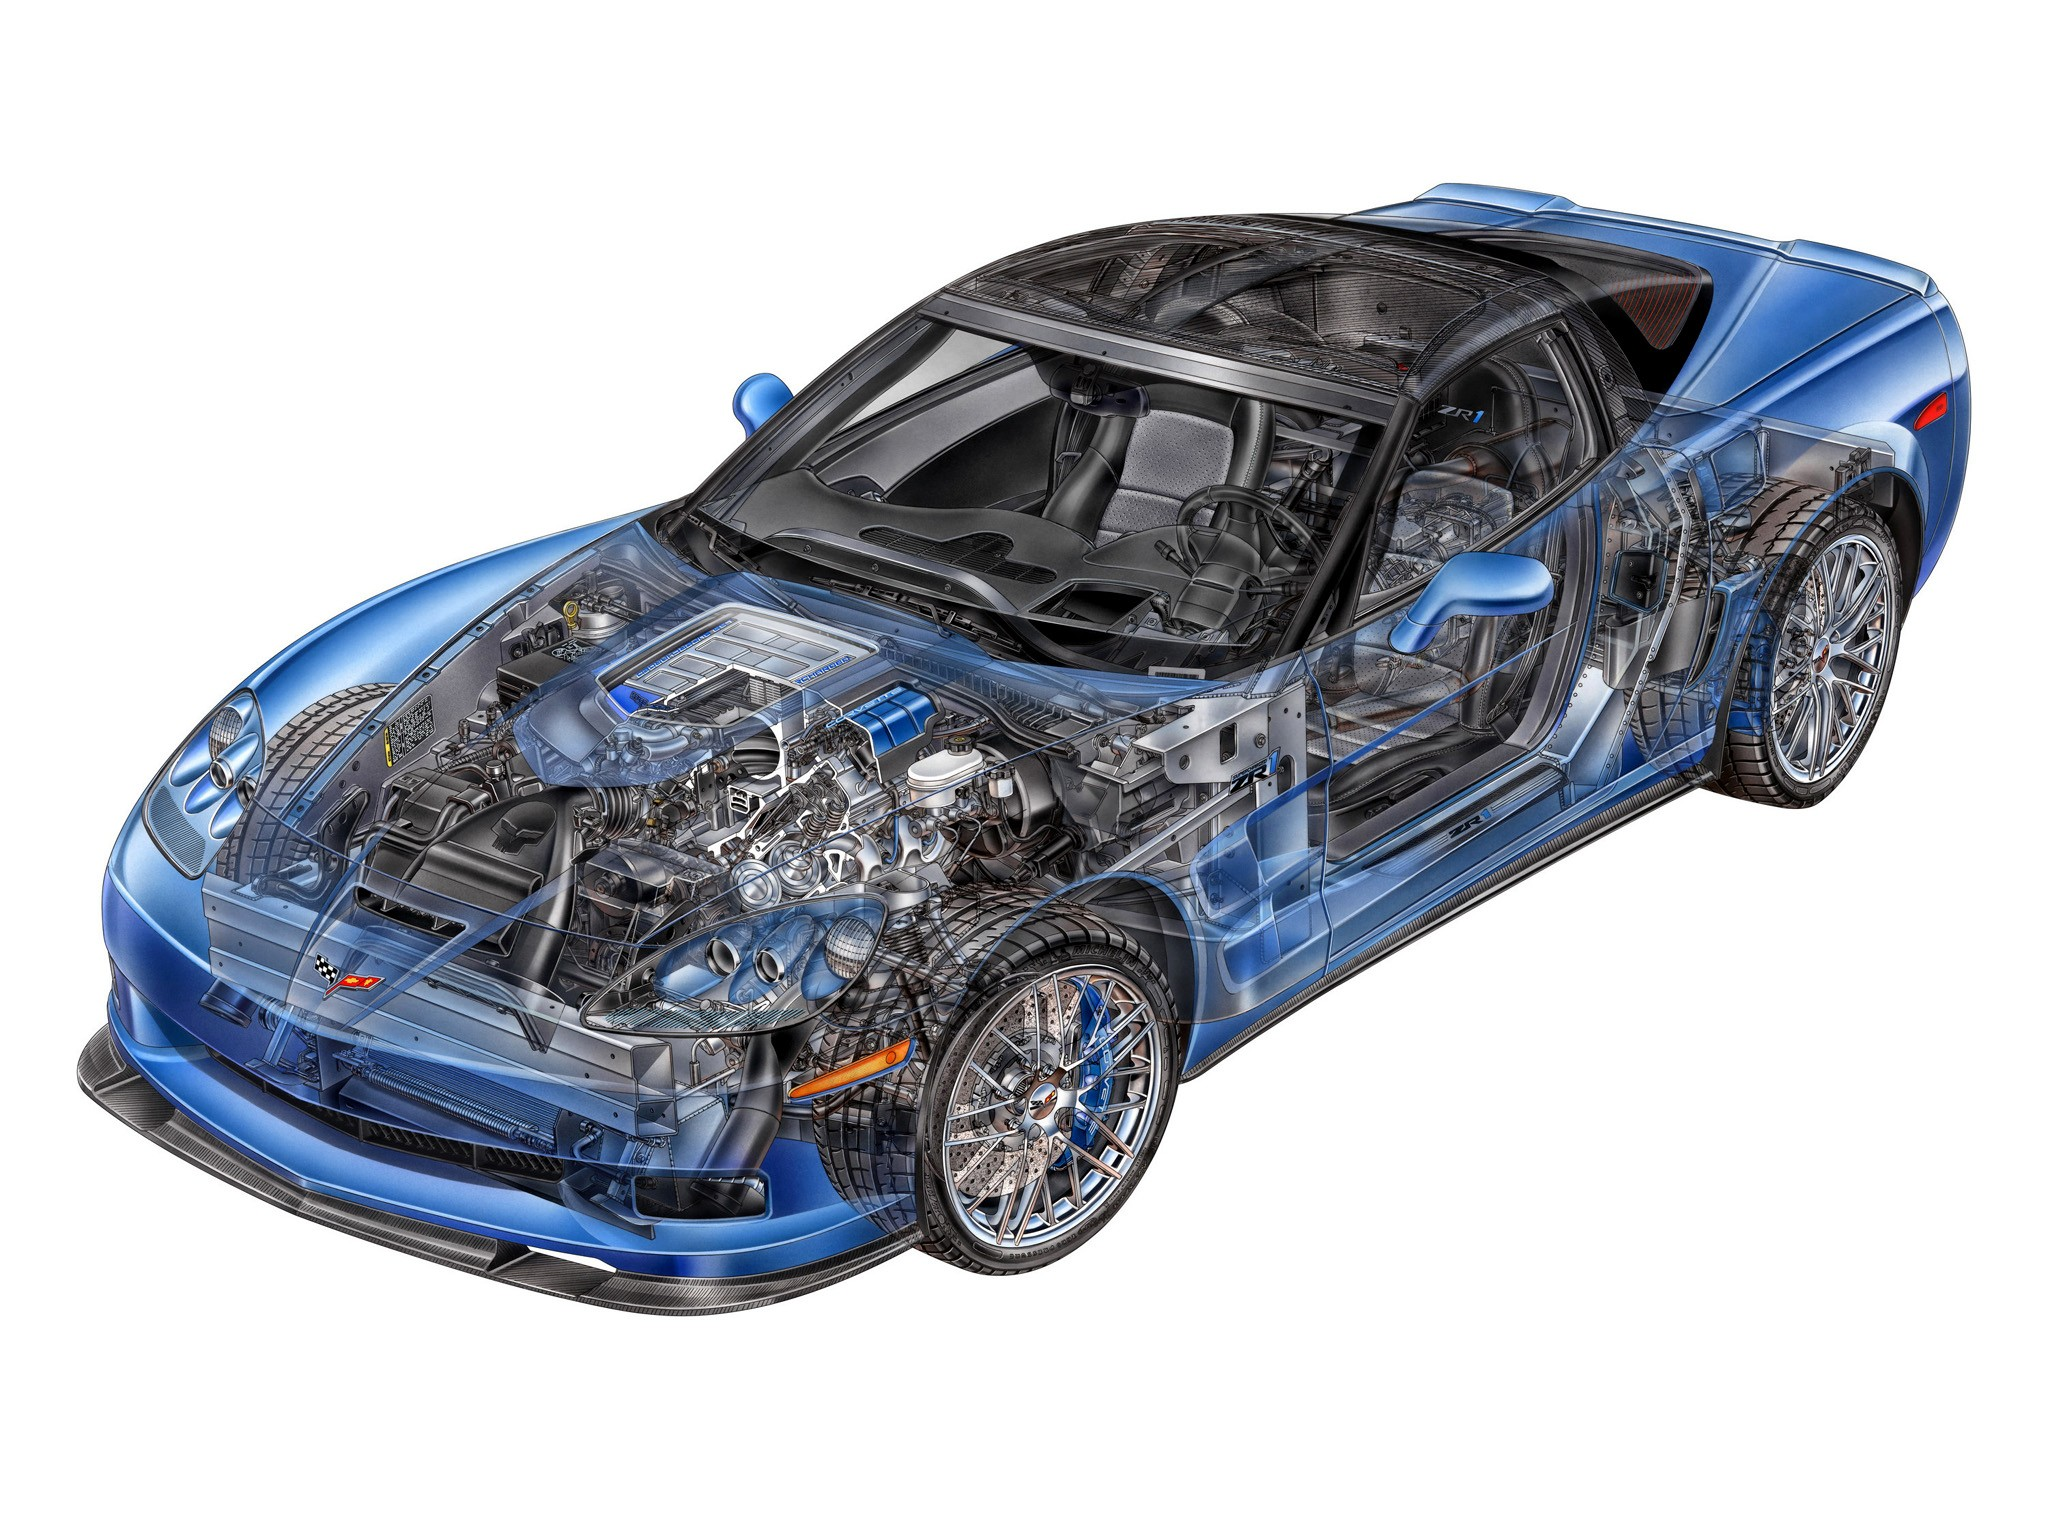 two way wiring diagram 2001 yamaha r6 headlight chevrolet corvette zr1 specs & photos - 2008, 2009, 2010, 2011, 2012, 2013 autoevolution